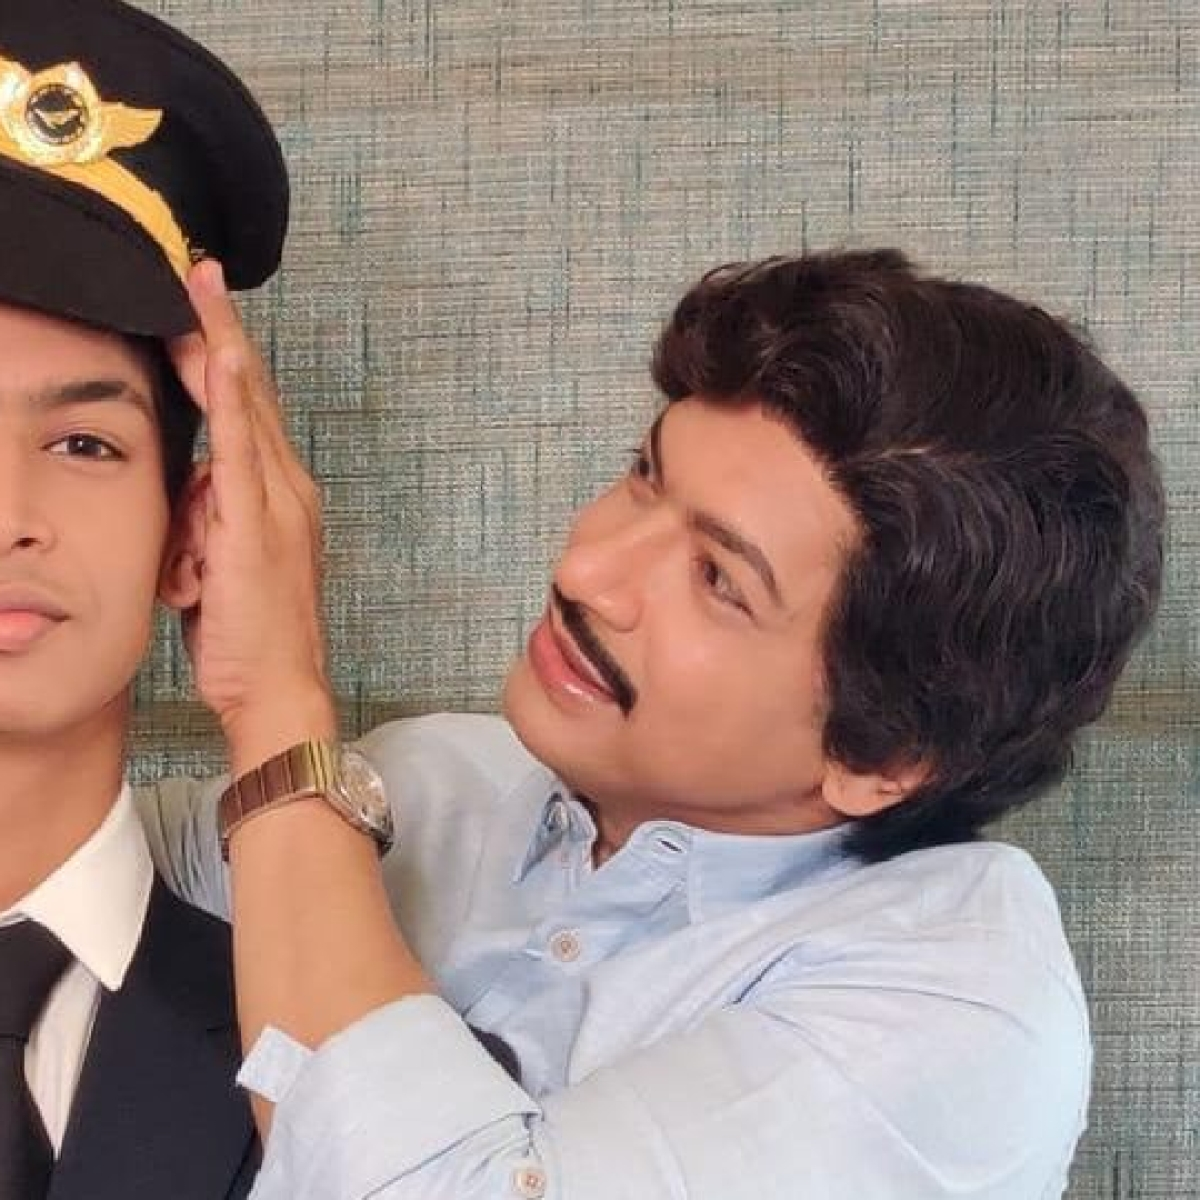 Father's Day 2021: 'Shubh is a one-take artist', says Shaan on working with his son for the song 'Tera Hissa Hoon'